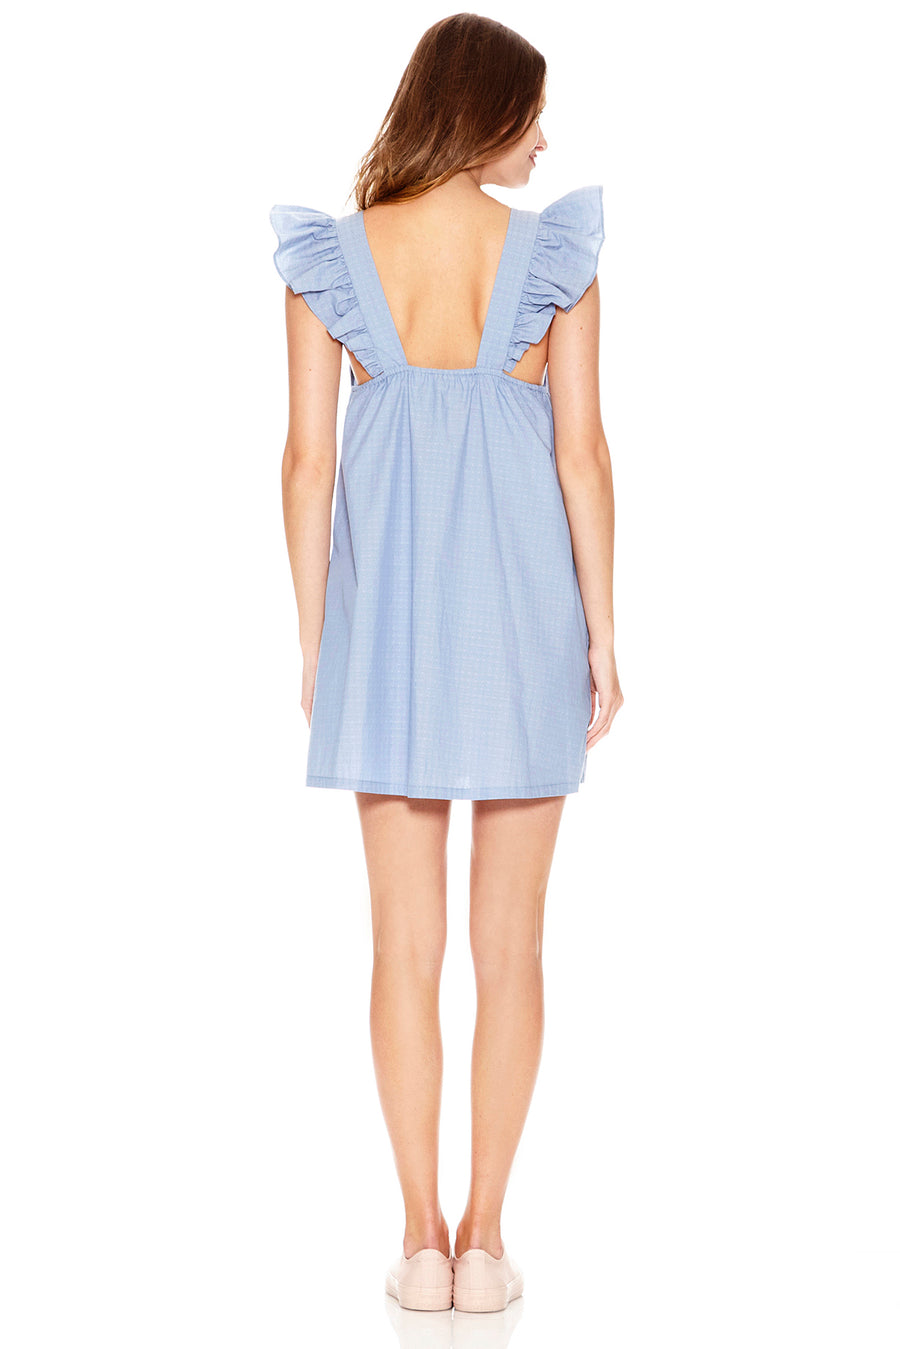 Evelyn Dress - Bleu